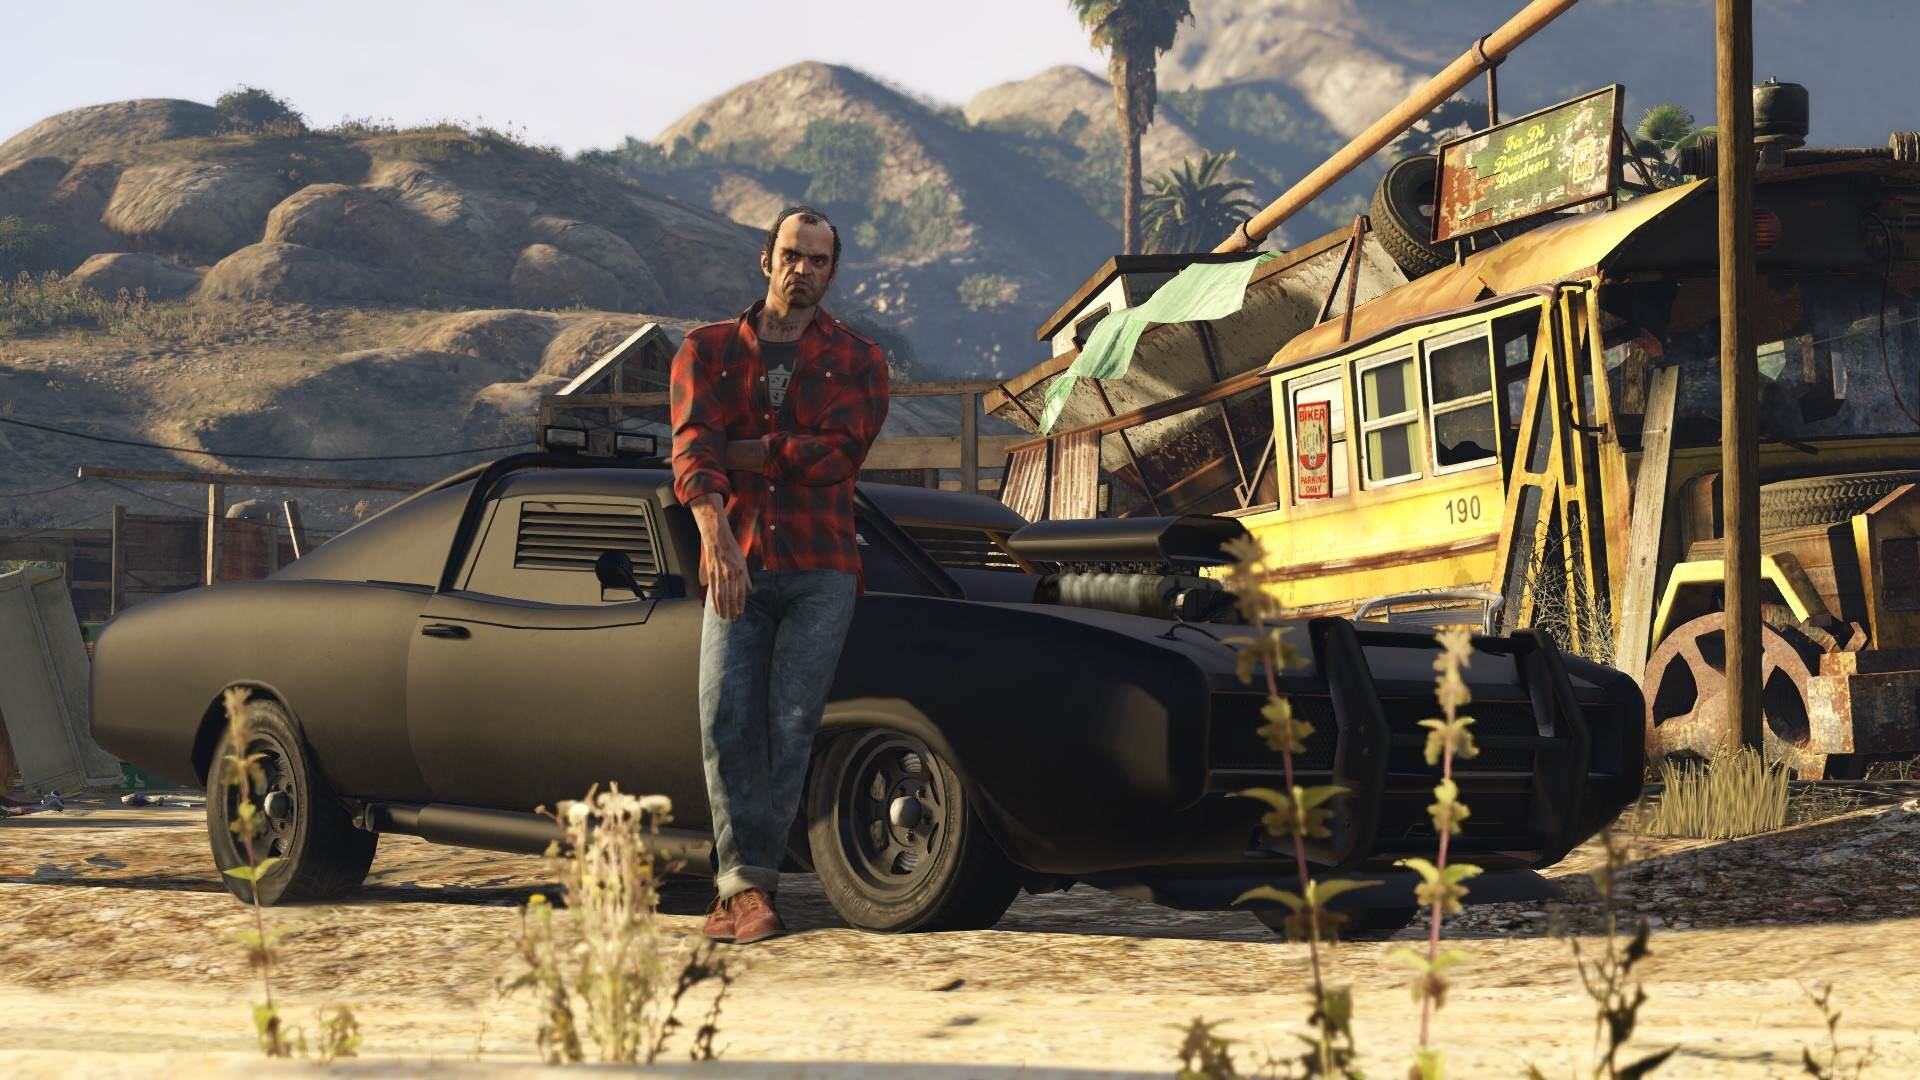 GTA Exec Suing Rockstar Parent Company For Unpaid Millions gta 5 pc release date delayed and system specifica mqzr.1920